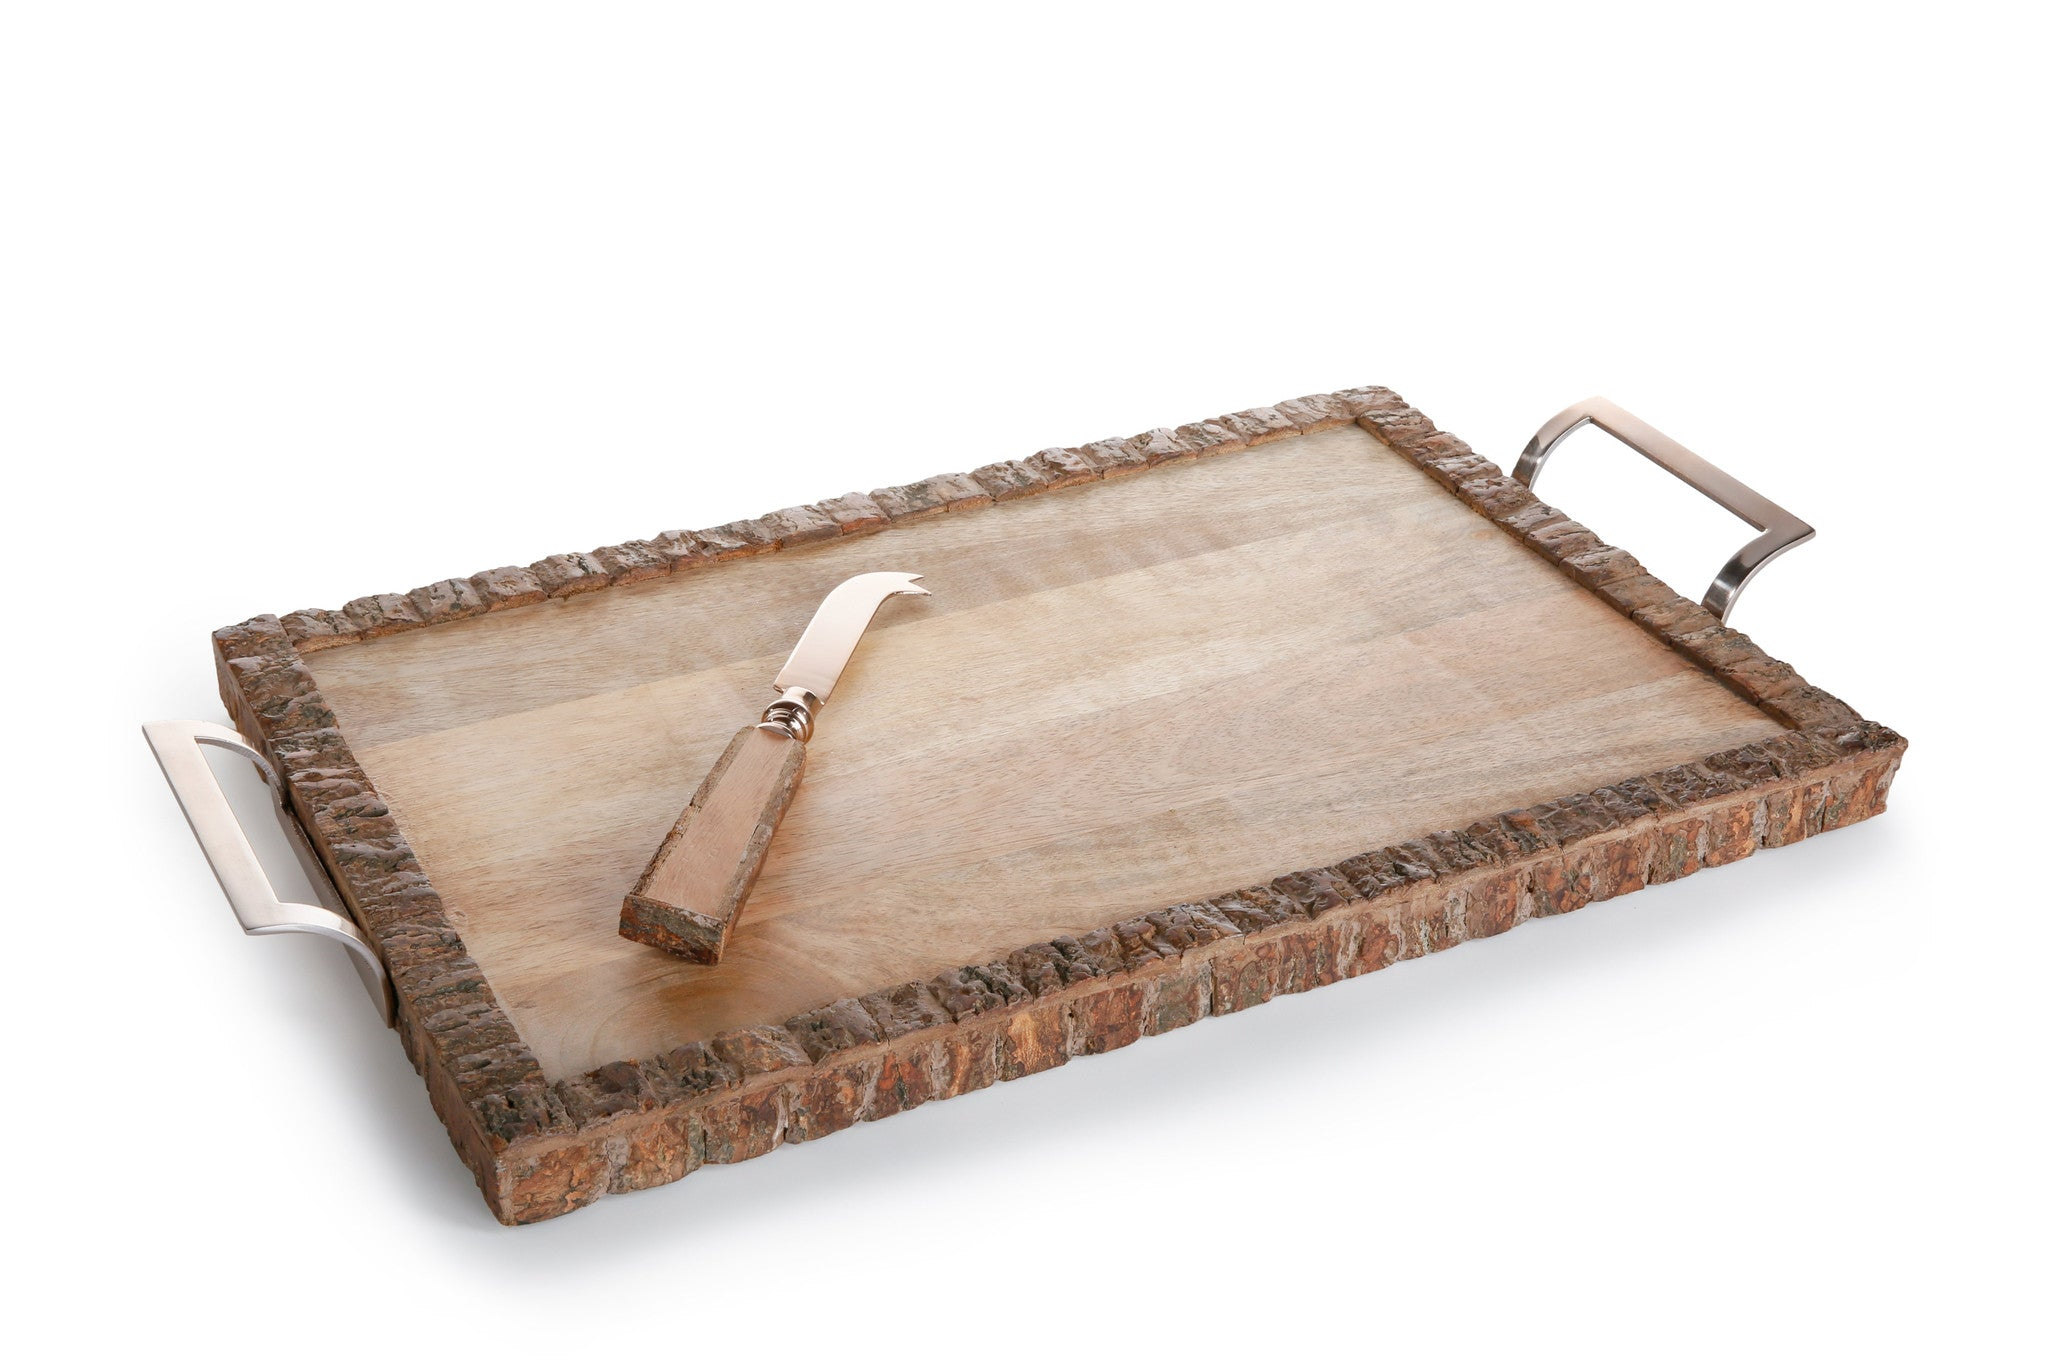 Aspen Wood Tray with Cheese Set - CARLYLE AVENUE